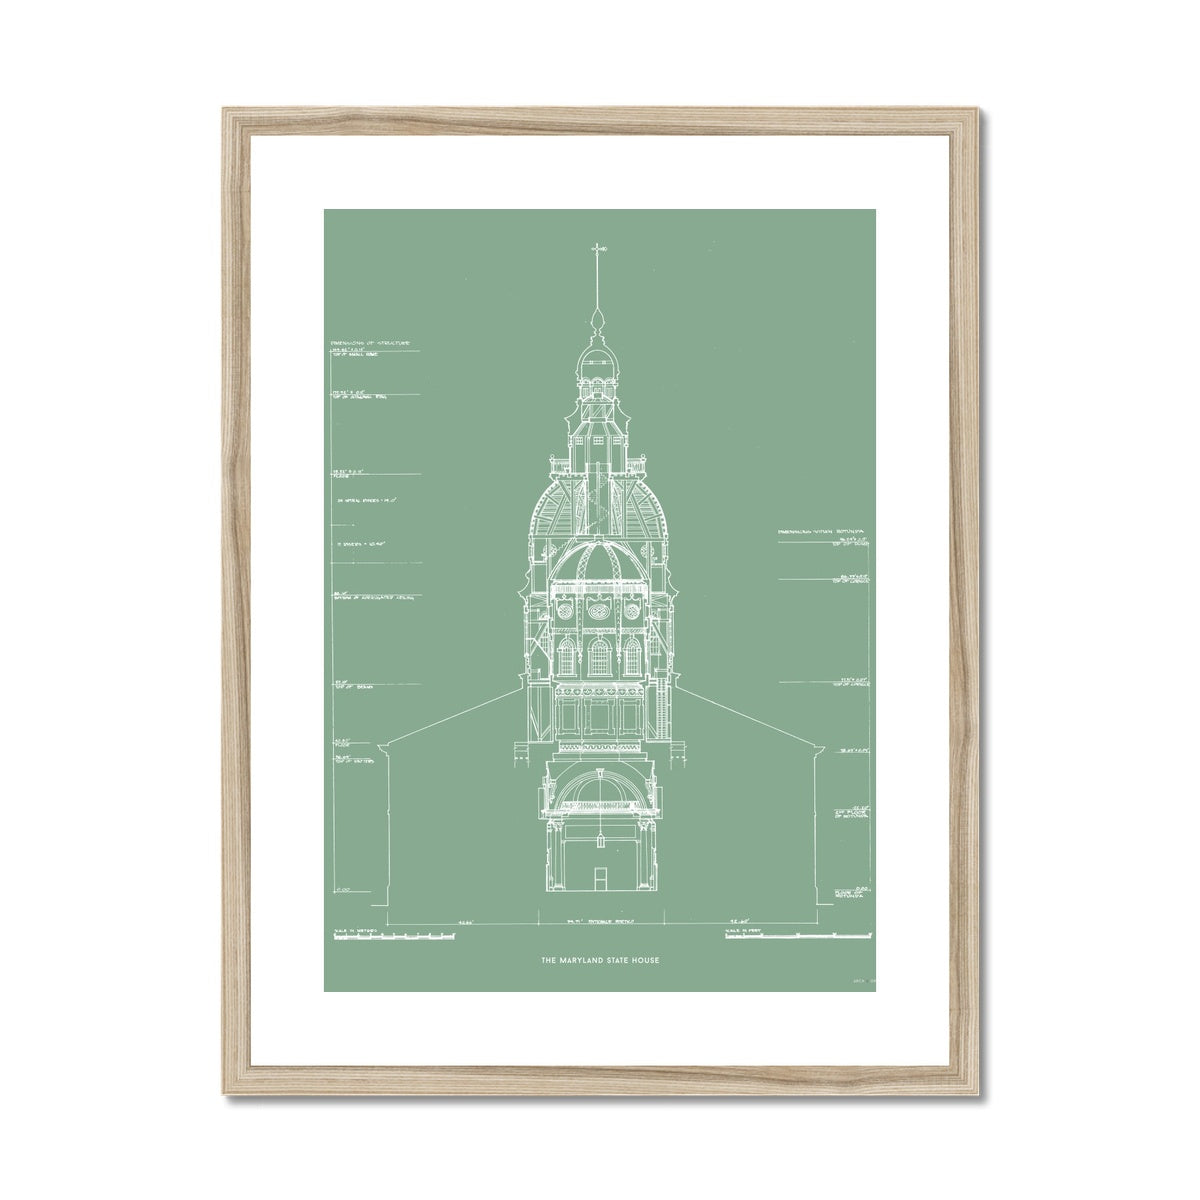 The Maryland State House - Northwest Elevation Cross Section - Green -  Framed & Mounted Print